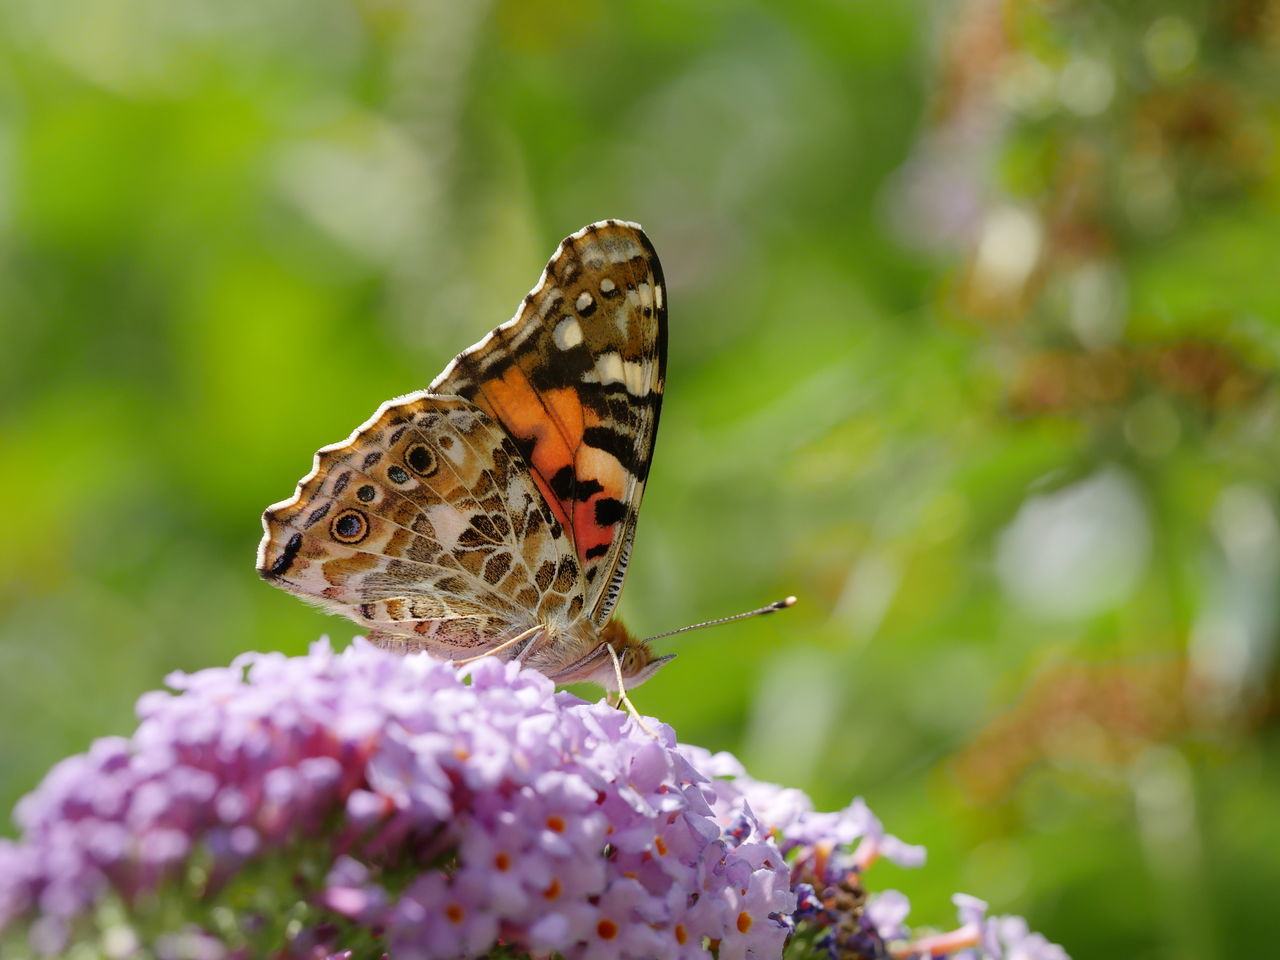 Distelfalter Painted Lady Butterfly Outdoors Insect Macro Nature No People Wildlife Perspective Close Up Closeup Fragility Detail Animals Animal Themes Multi Colored Animal Antenna Beautiful Nature From My Point Of View Taking Photos Focus On Foreground